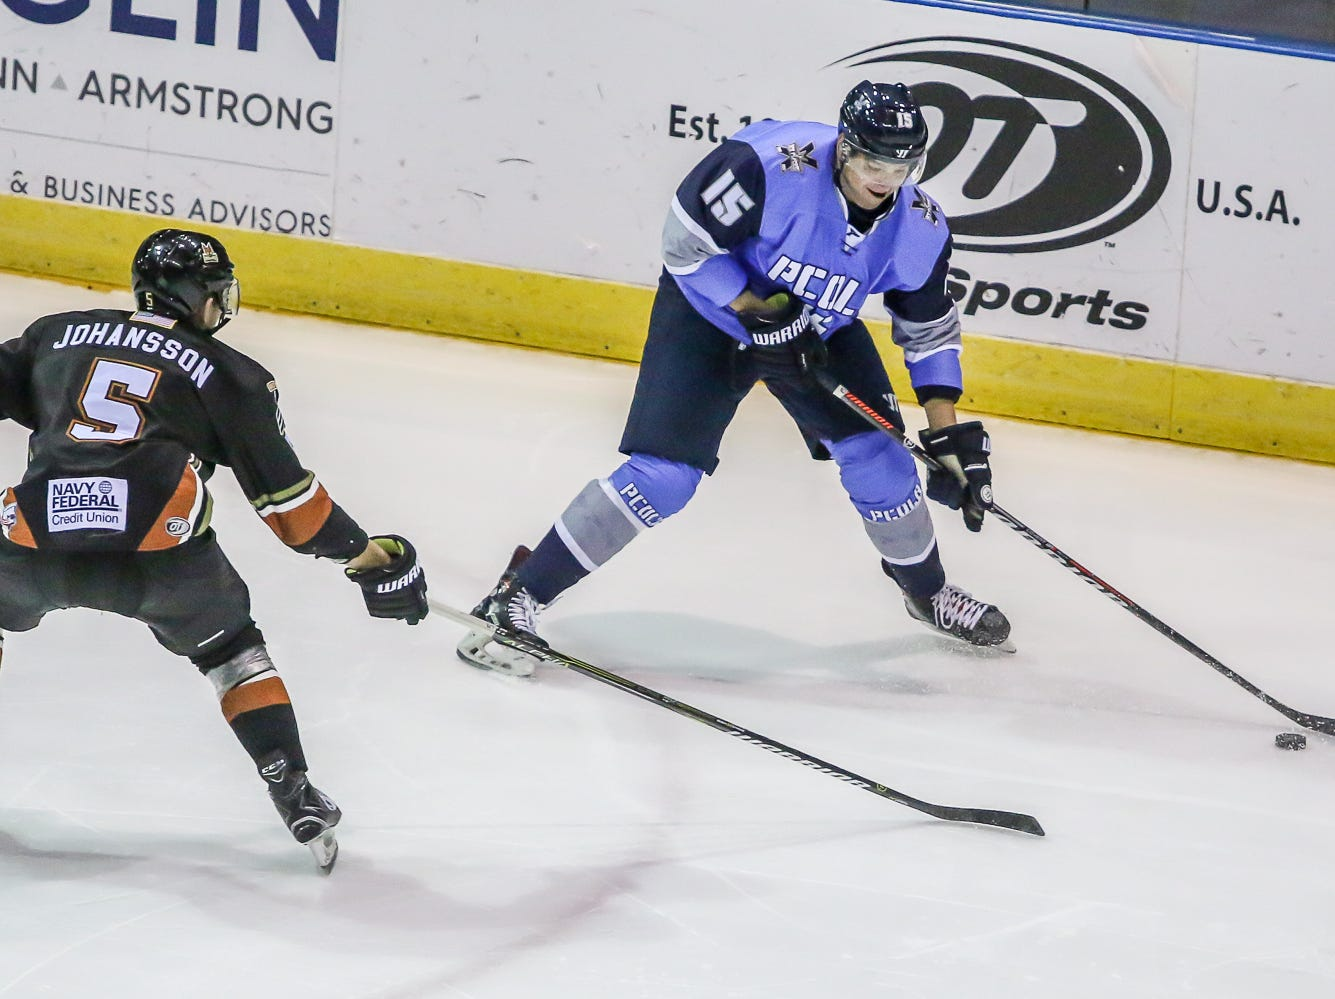 Pensacola's Nathan Bruyere (15) looks to clear the puck past Fayetteville's Alfred Johansson (5) at the Pensacola Bay Center on Saturday, January 5, 2019.